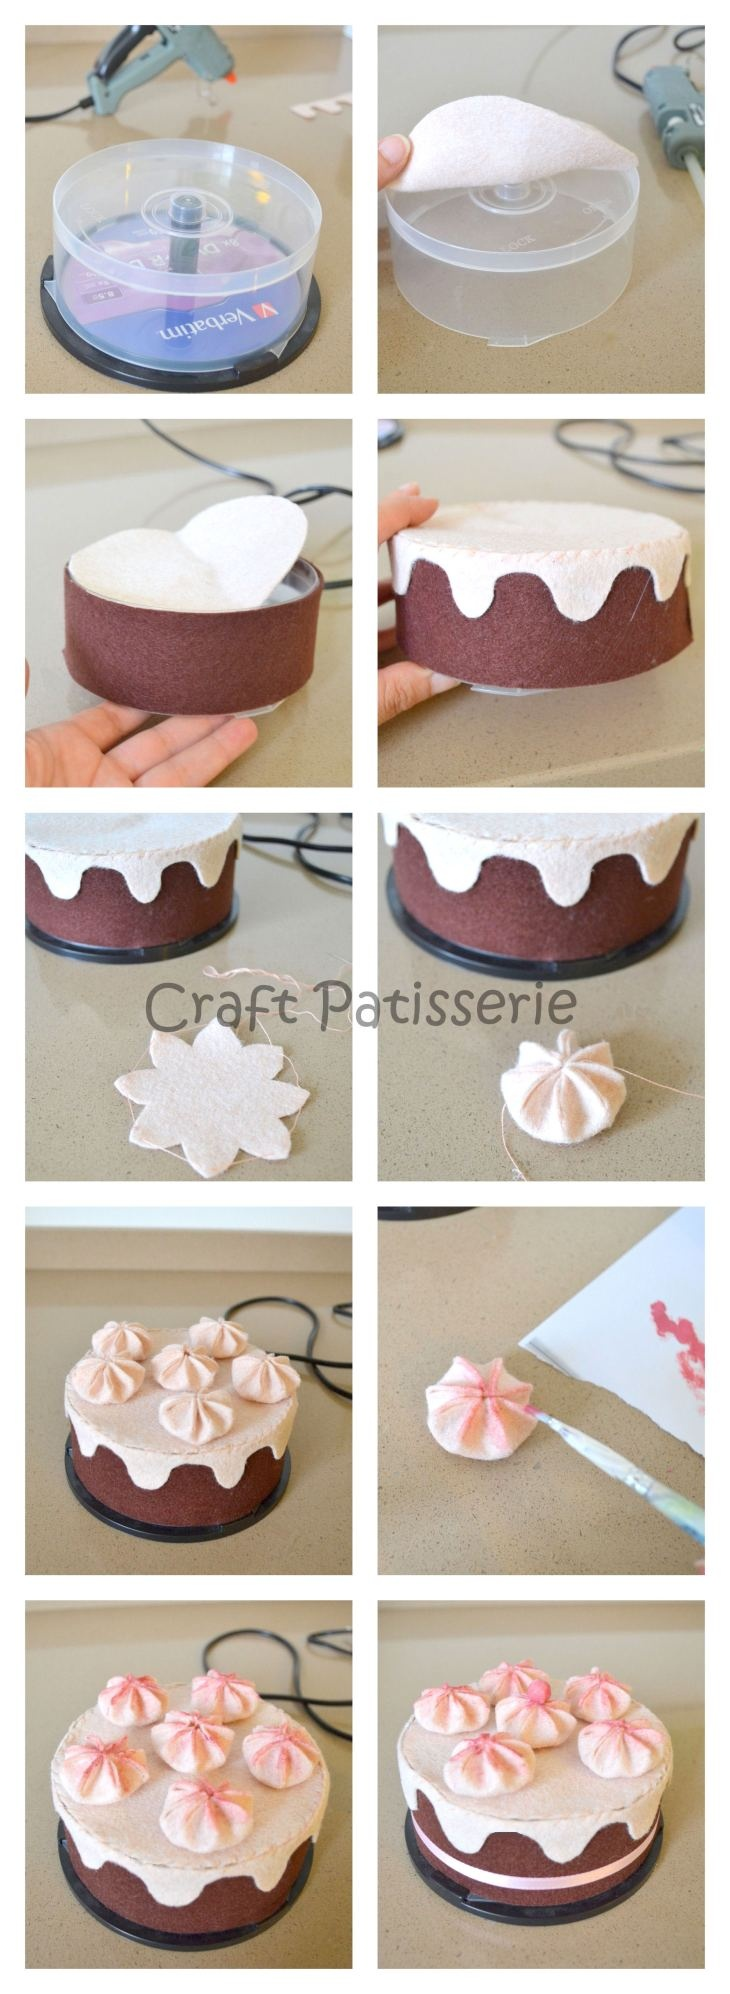 DIY- riciclo creativo della campana porta cd su: http://craftpatisserie.wordpress.com